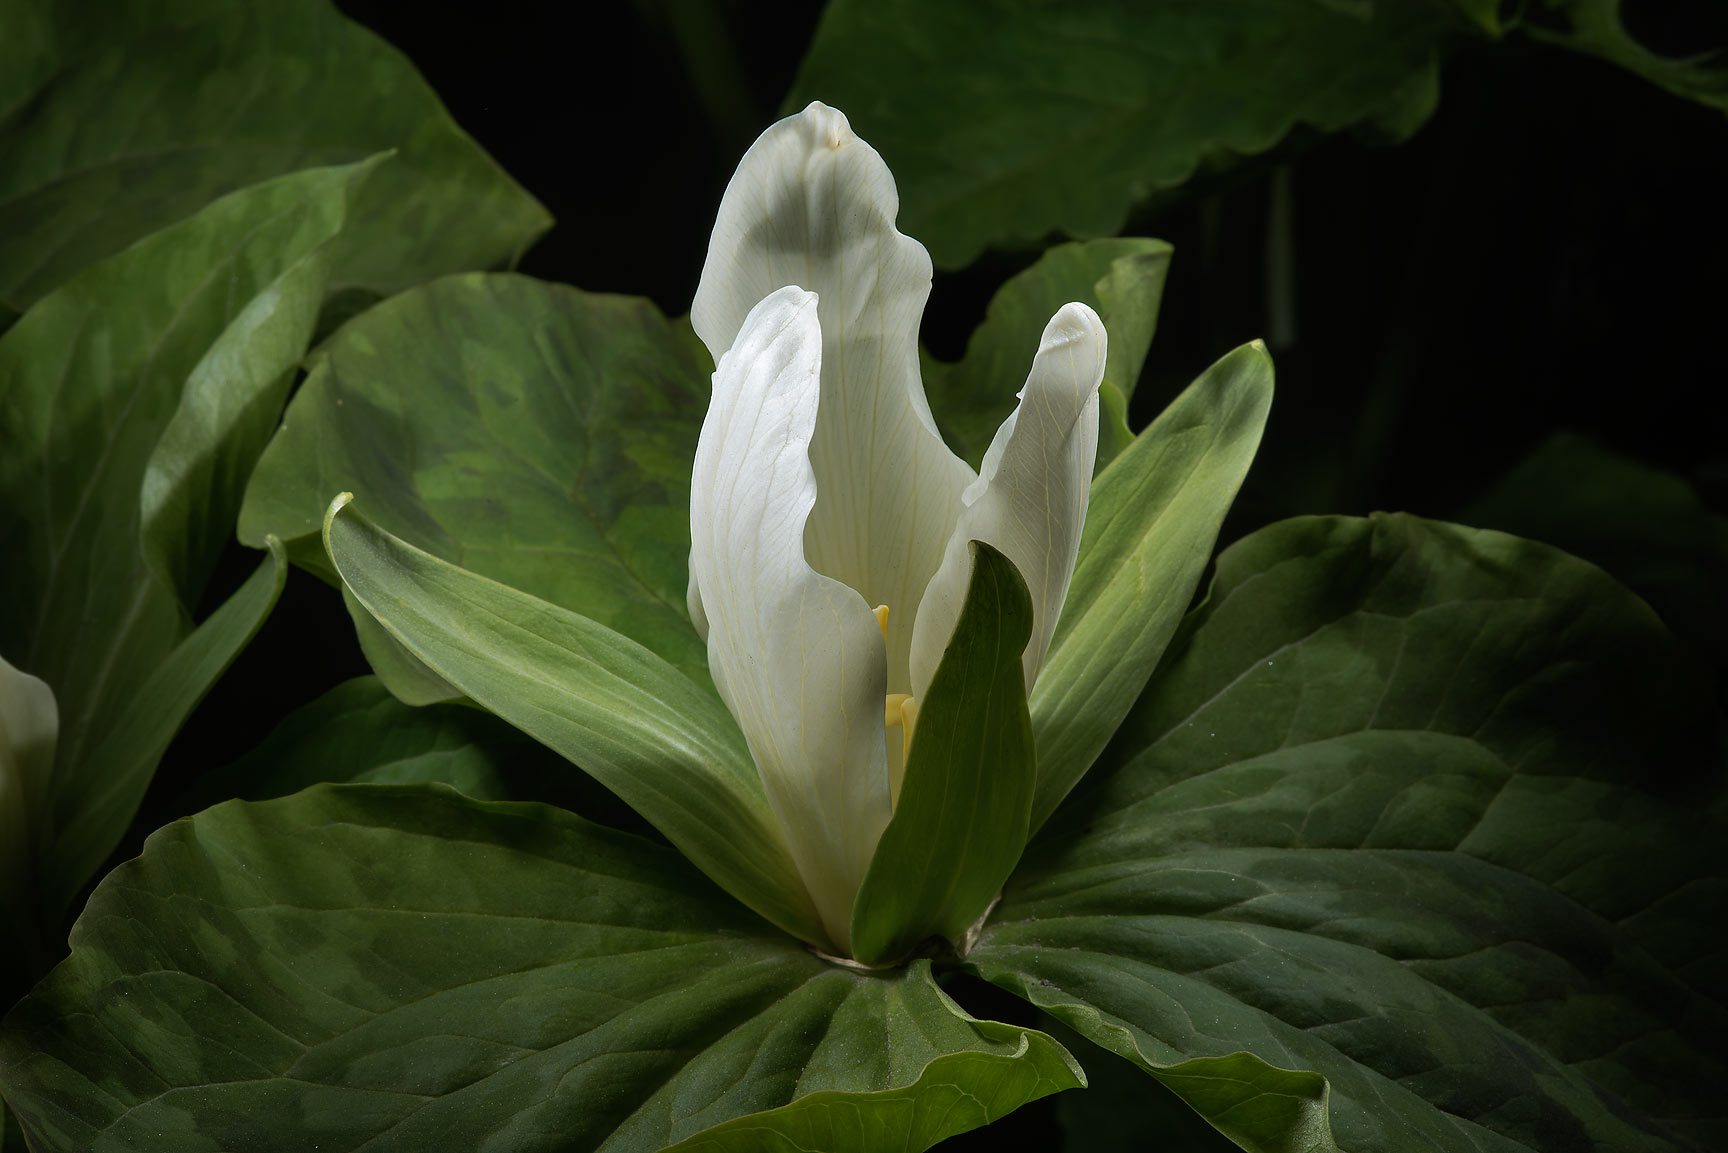 Wake-robin (Toadshade, Trillium sessile Snow...Institute. St.Petersburg, Russia